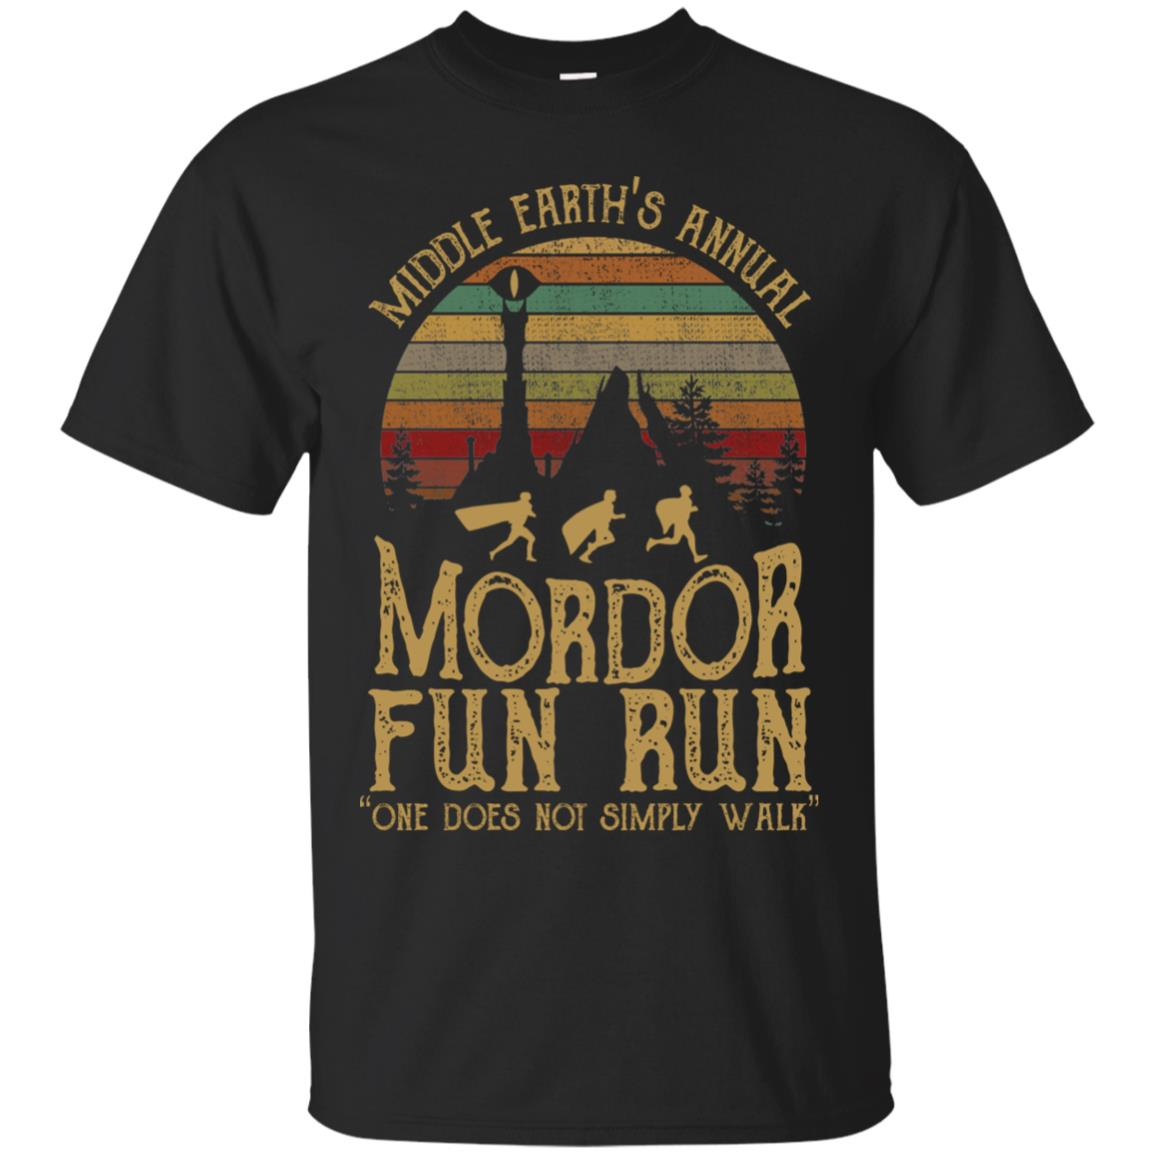 0469e12f6 Middle earth's annual mordor fun run one does not simply walk T shirt, Ls,  Hoodie - RobinPlaceFabrics